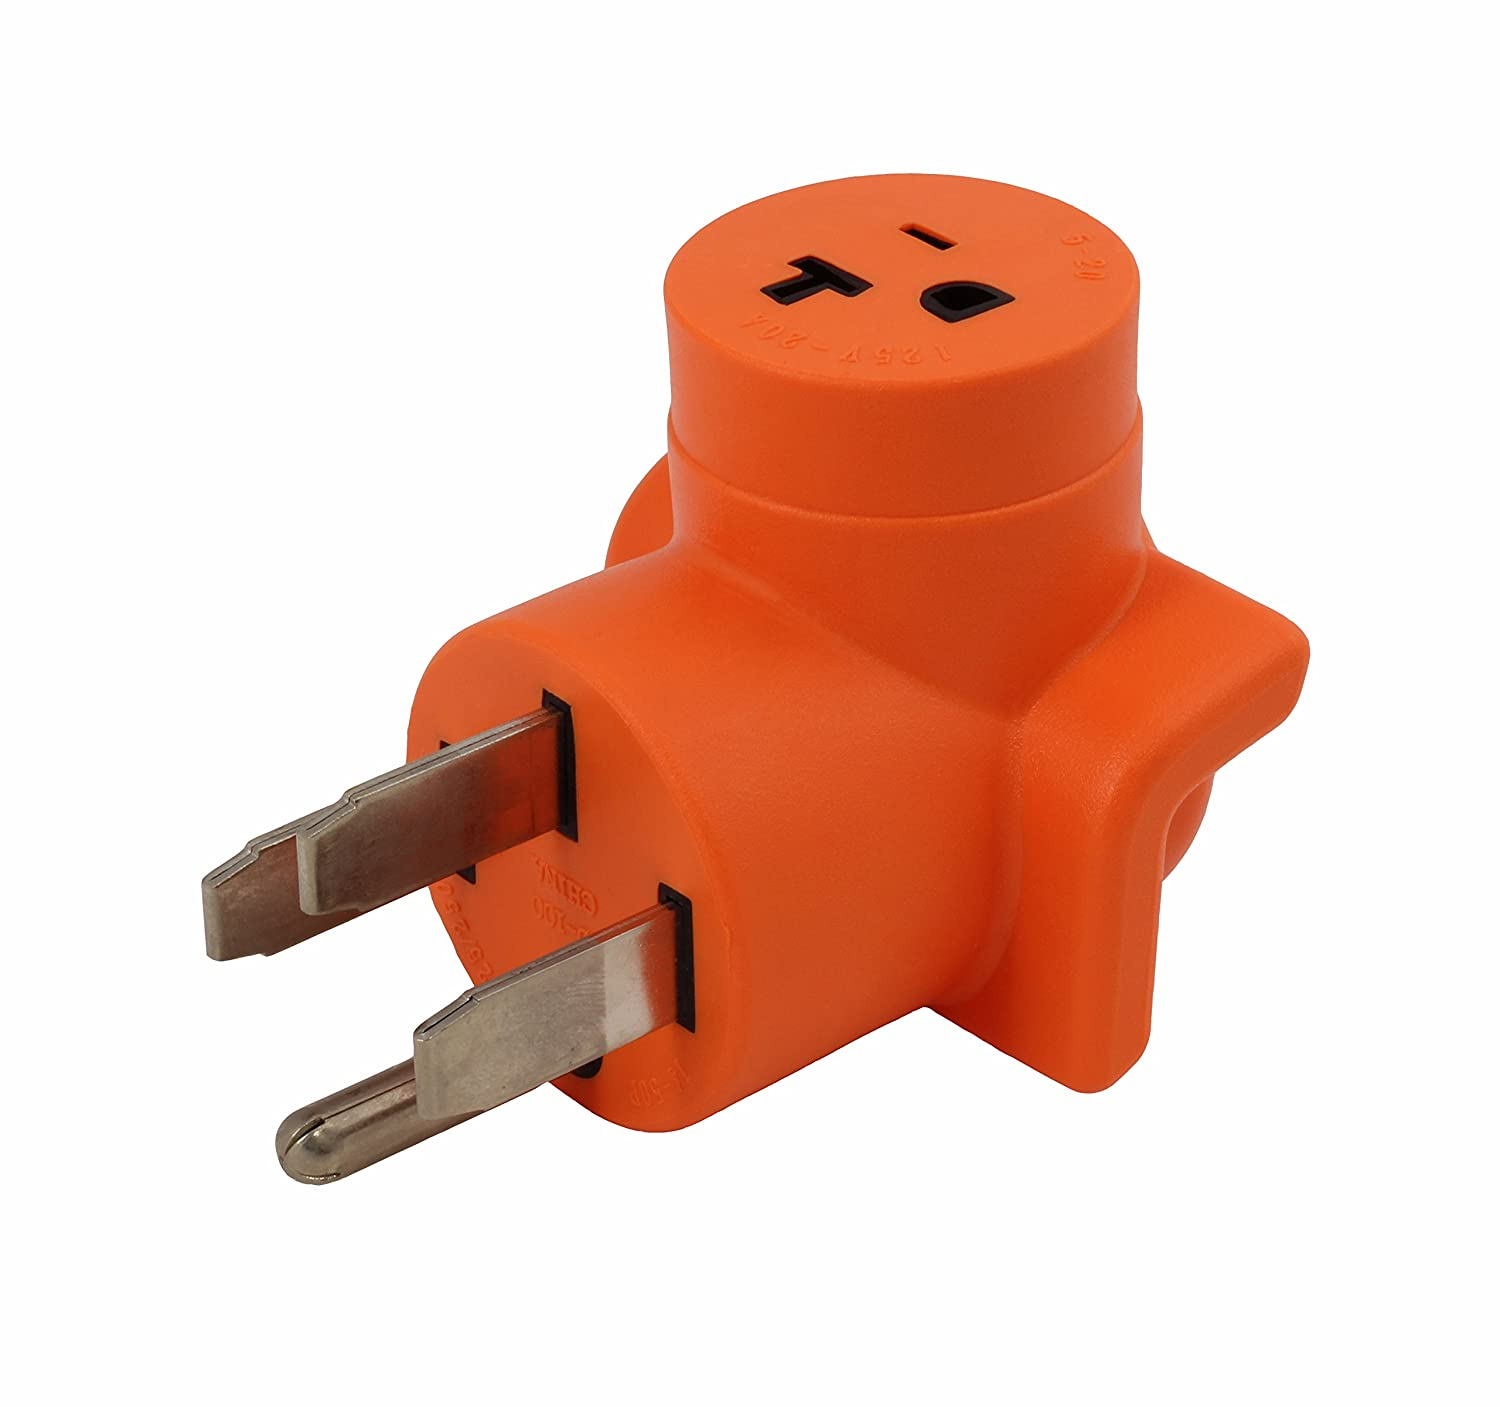 AC WORKS AD1450520 Plug Adapter NEMA 14-50P 50Amp Range//RV//Generator Outlet to Household 15//20Amp 125Volt T-Blade Female Connector